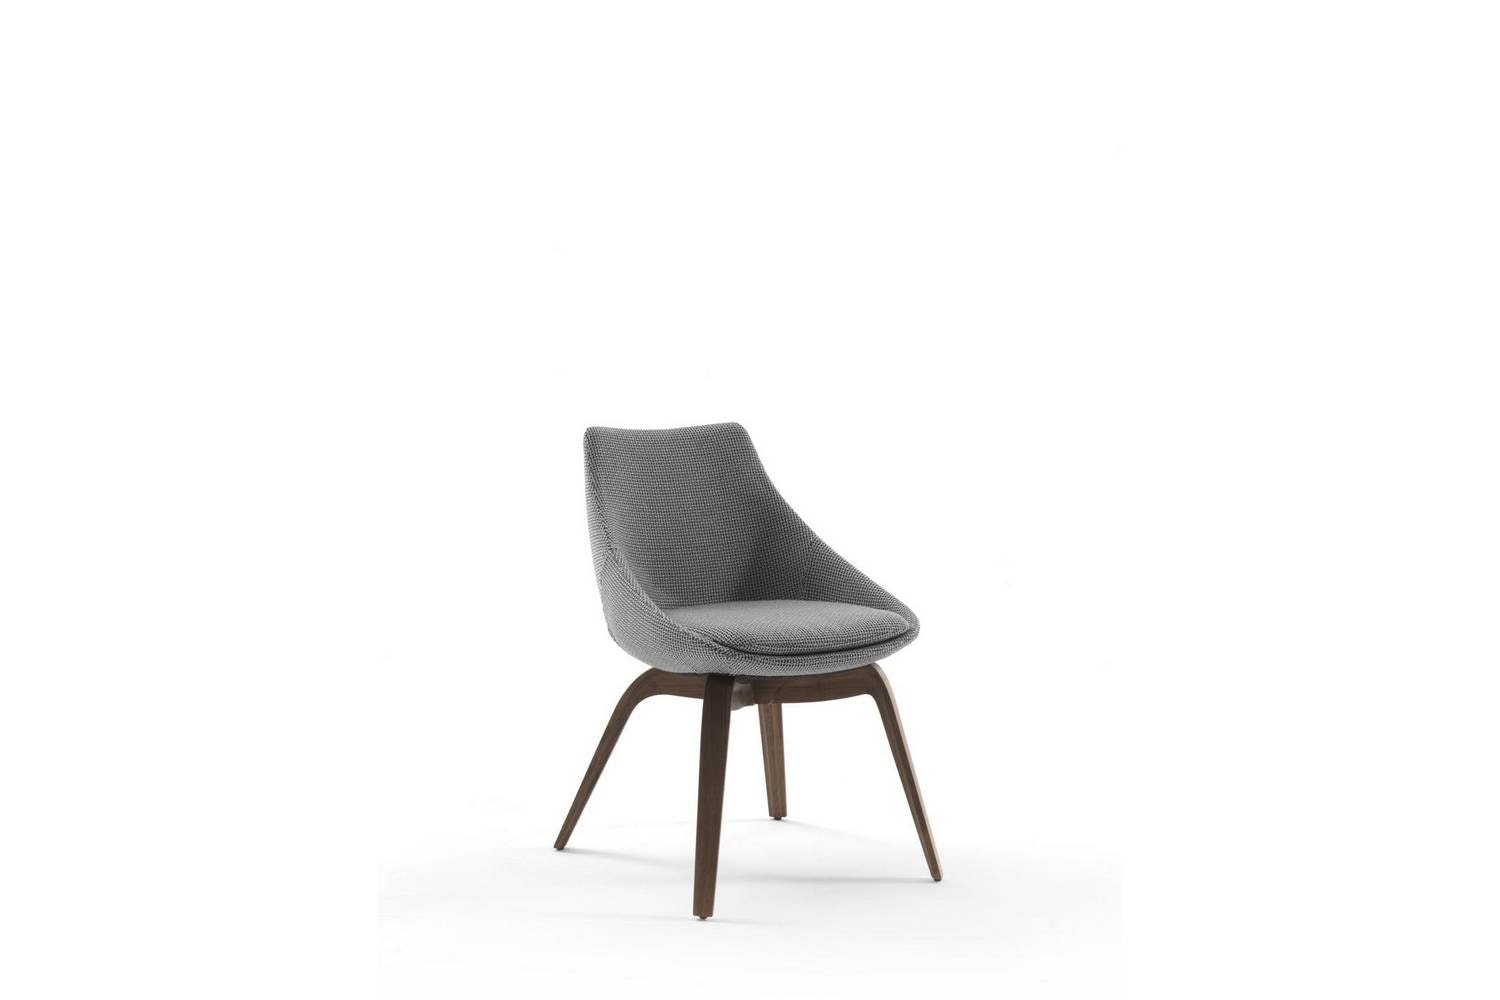 Penelope Chair by M. Marconato - T. Zappa for Porada